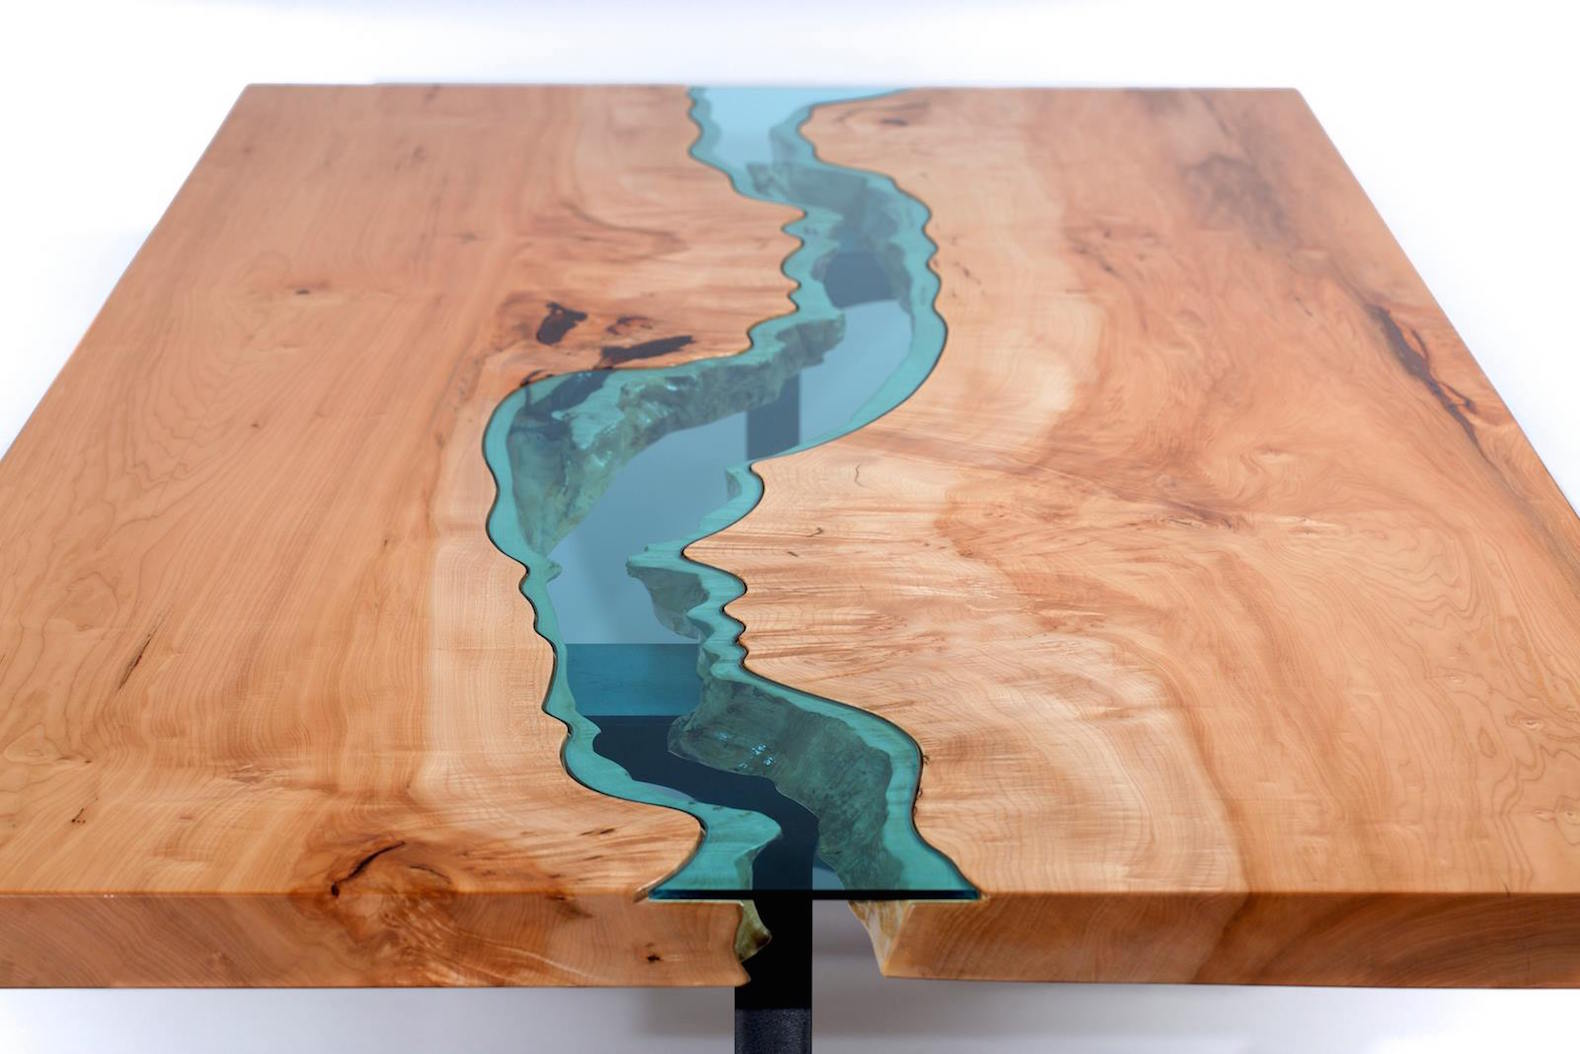 Coffee table inhabitat green design innovation architecture escape into the glass rivers and lakes of these beautiful wood tables geotapseo Images